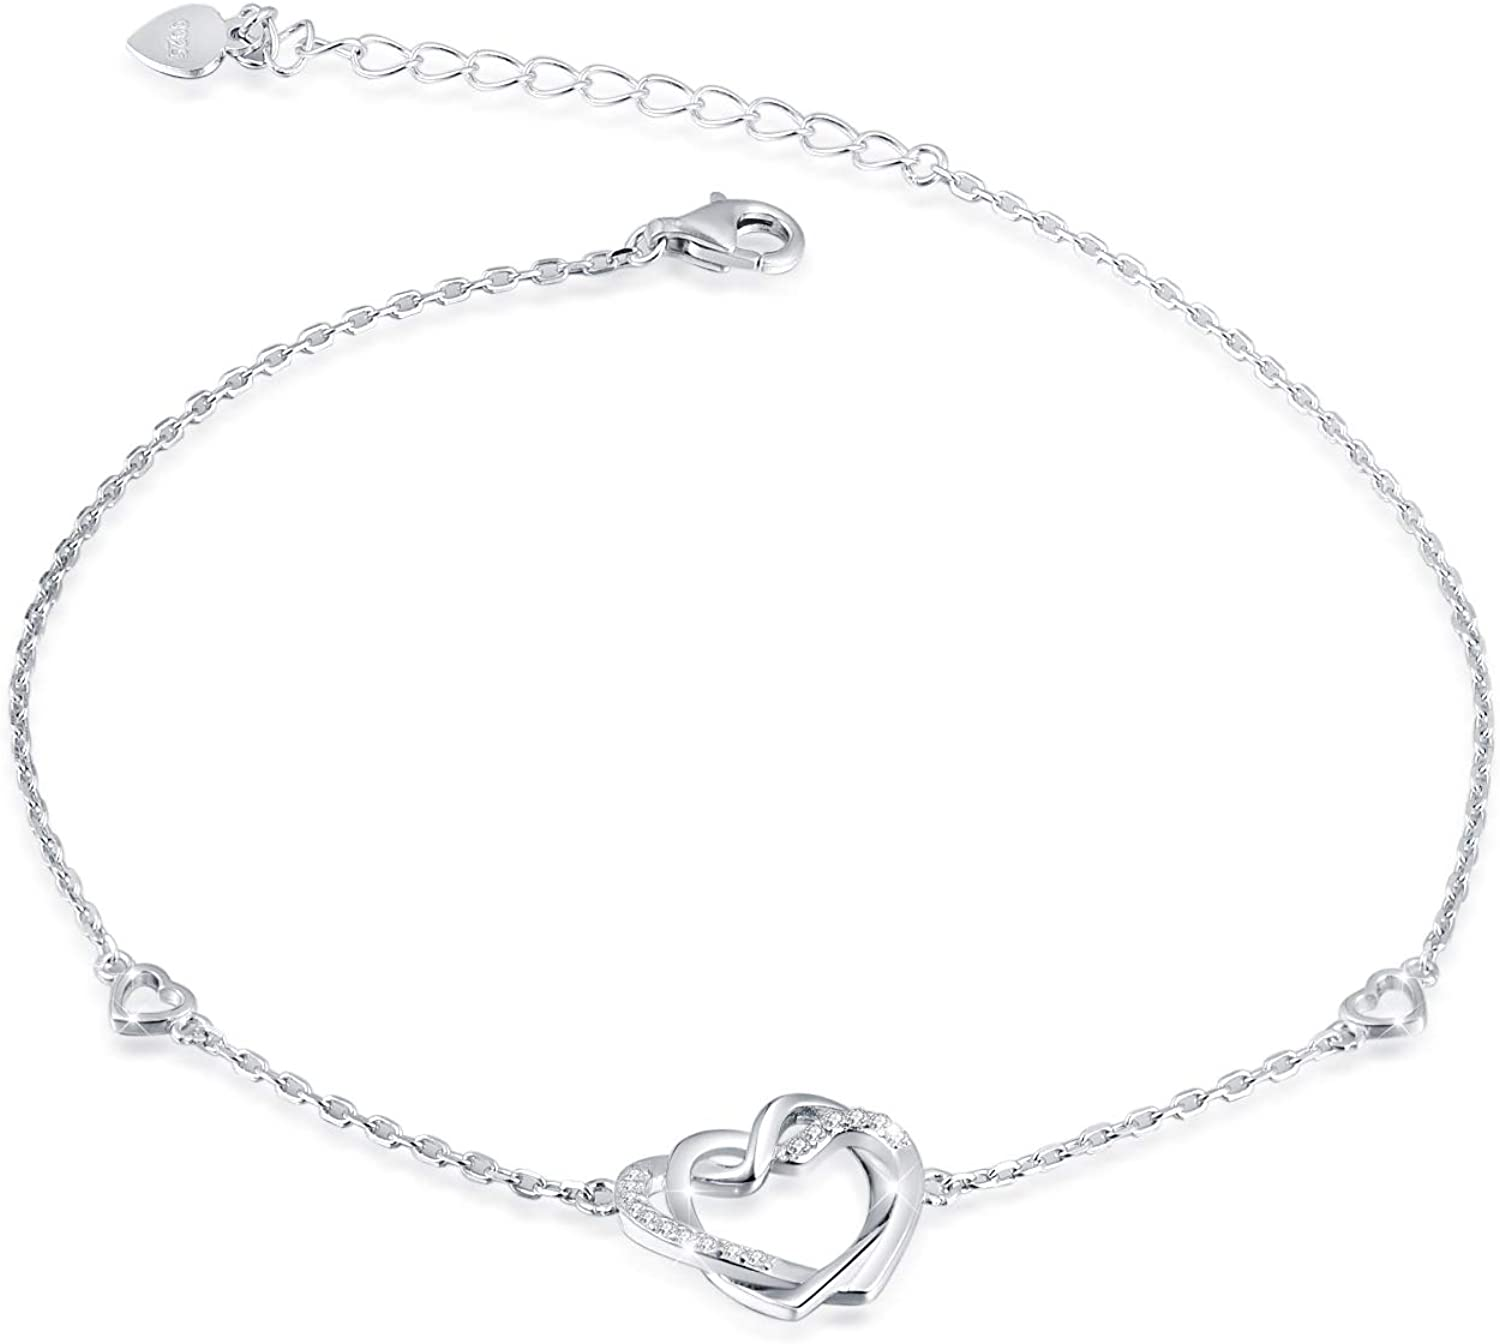 S925 Sterling Silver Anklet for Women Girl Adjustable Beach Style Foot Ankle Bracelet Jewelry (Double Heart)